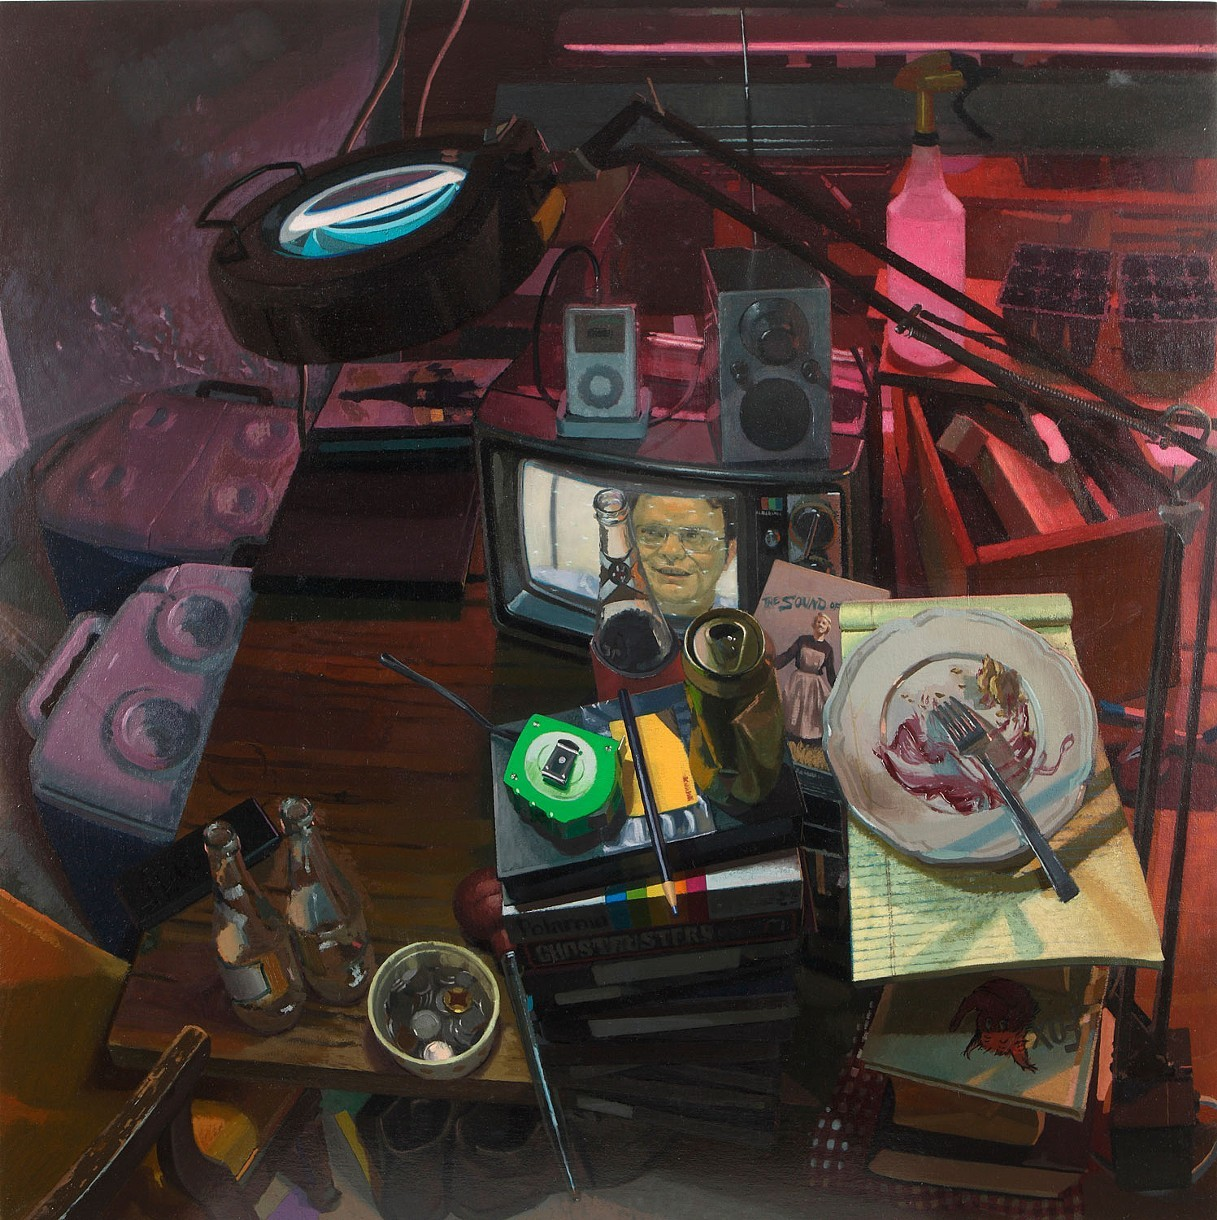 Neil Callander, Dusty's Workspace, oil on muslin on panel, 38 x 38 inches, 2012